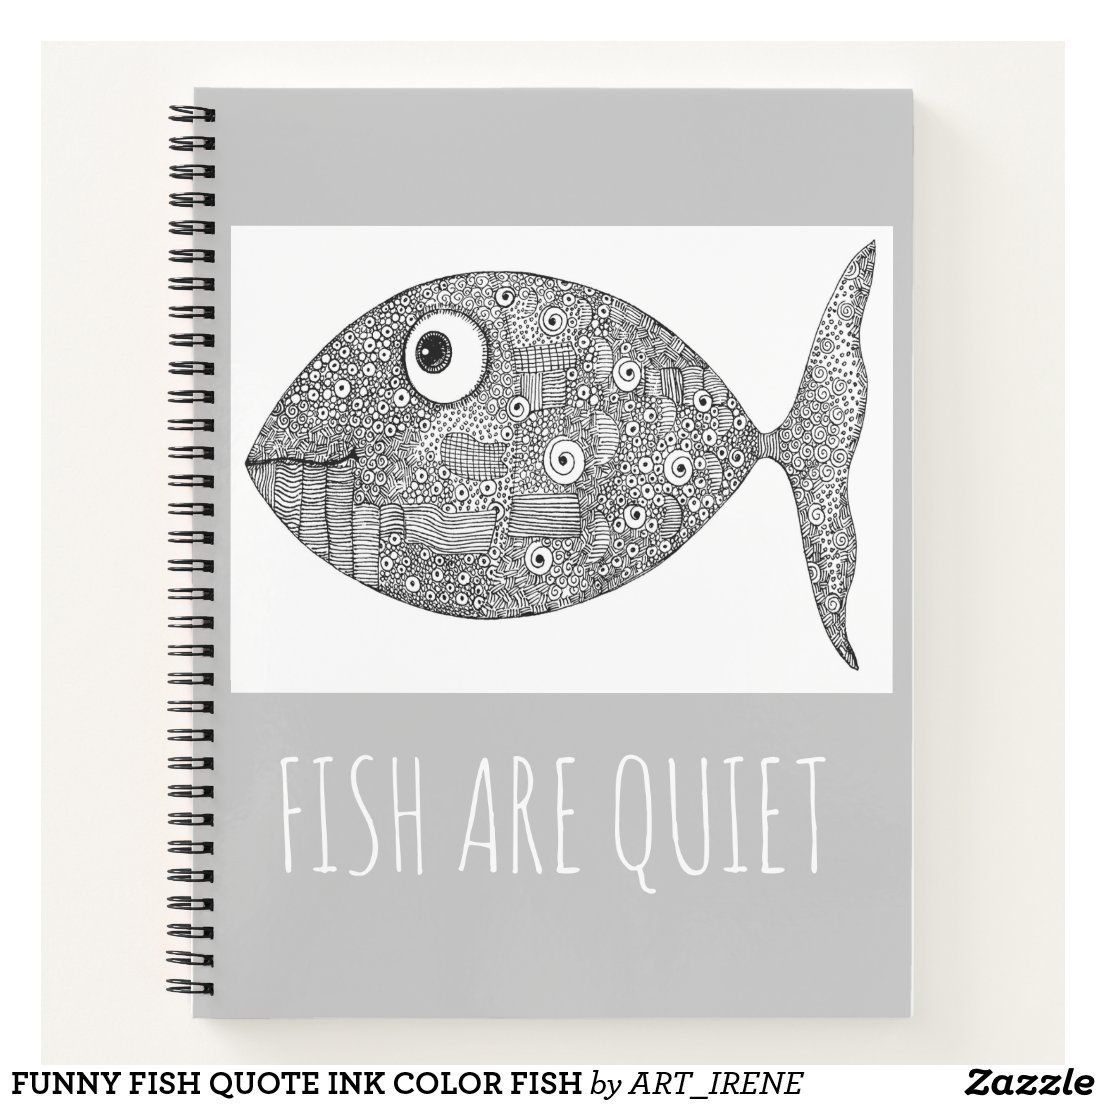 Funny Fish Quote Ink Color Fish Notebook Zazzle Com Fishing Quotes Funny Fishing Humor Fishing Quotes